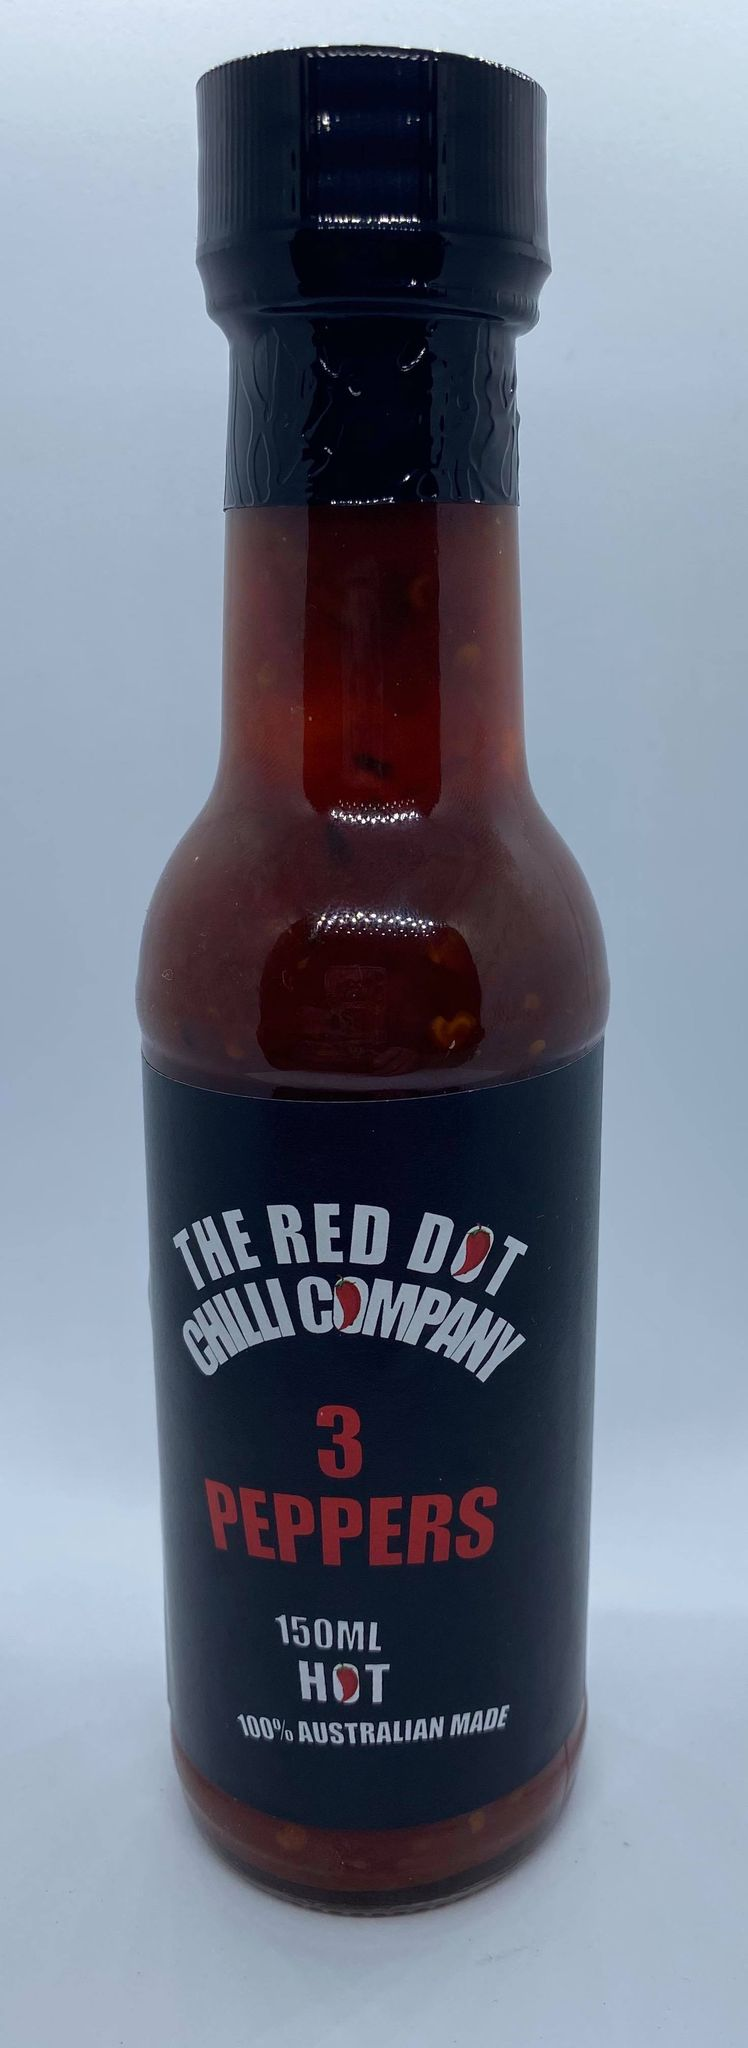 The Red Dot Chilli Company - 3 Peppers